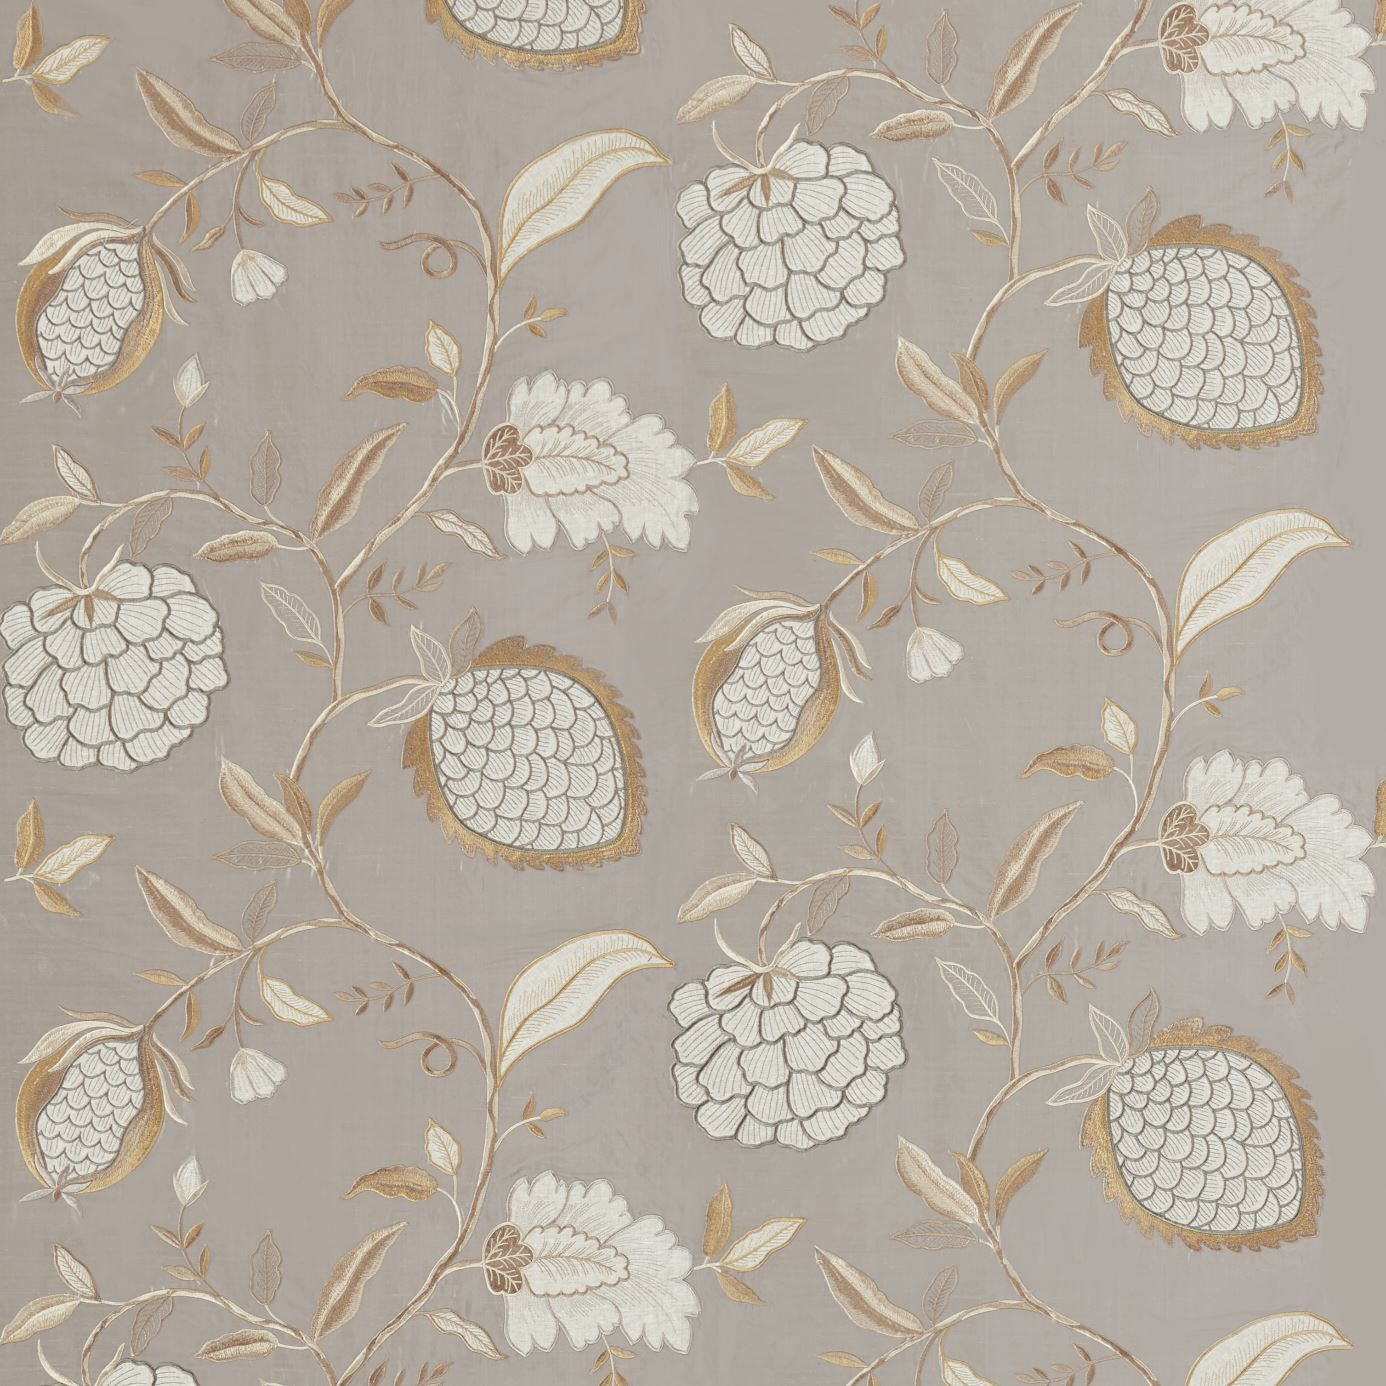 Pomegranate Tree Embroidered Fabric A Beautiful And Sophisticated With Large Scale Gold Two Over Trail Of Fruits